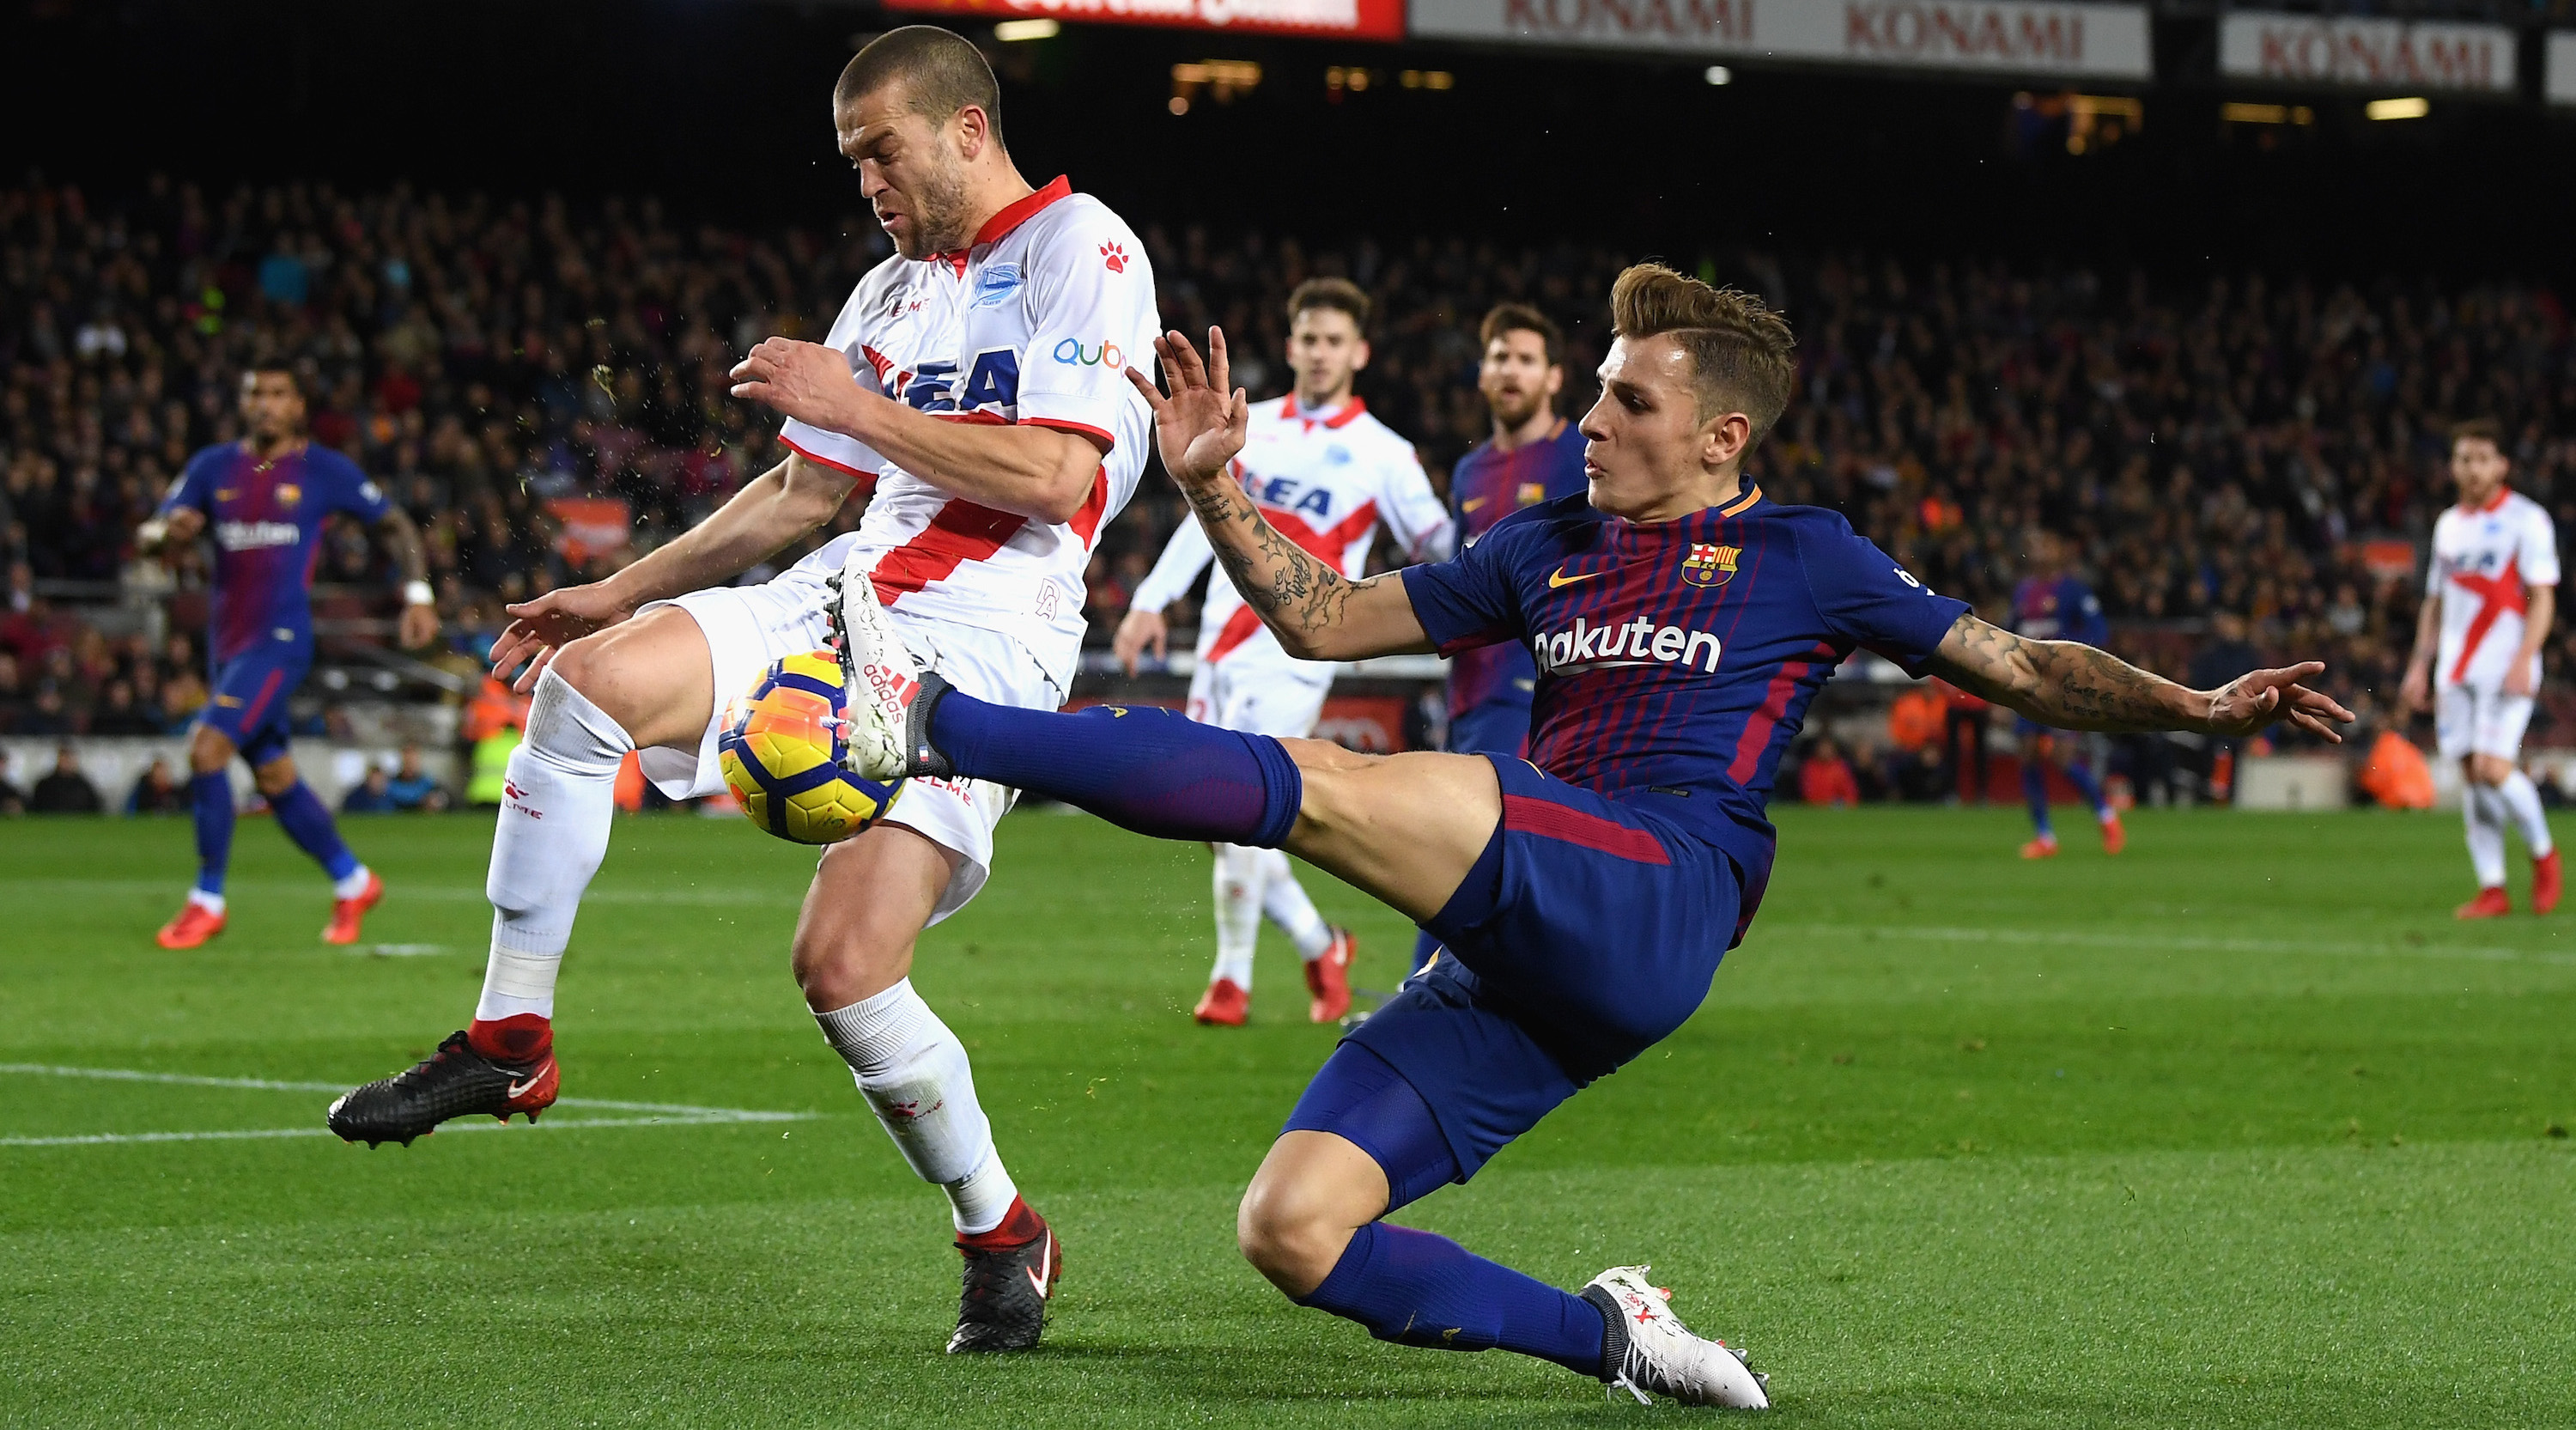 BARCELONA, SPAIN - JANUARY 28: Lucas Digne of Barcelona battles for posession with Víctor Laguardia of Alaves during the La Liga match between Barcelona and Deportivo Alaves at Camp Nou on January 28, 2018 in Barcelona, Spain. (Photo by David Ramos/Getty Images)